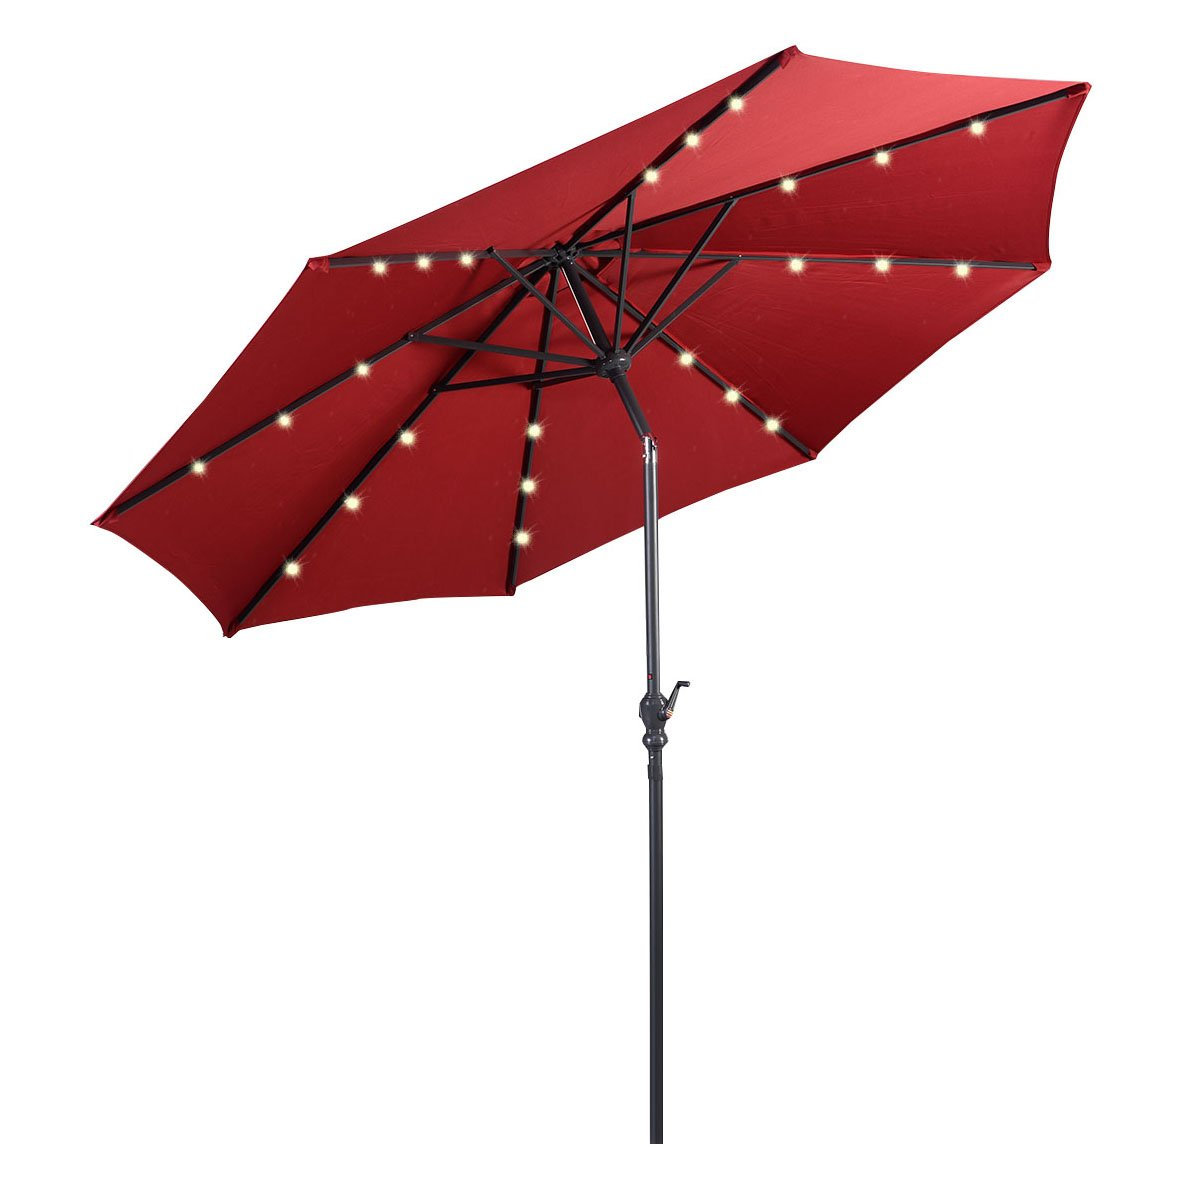 Led Umbrella Amazon: Giantex 10ft Patio Solar Umbrella LED Patio Market Steel